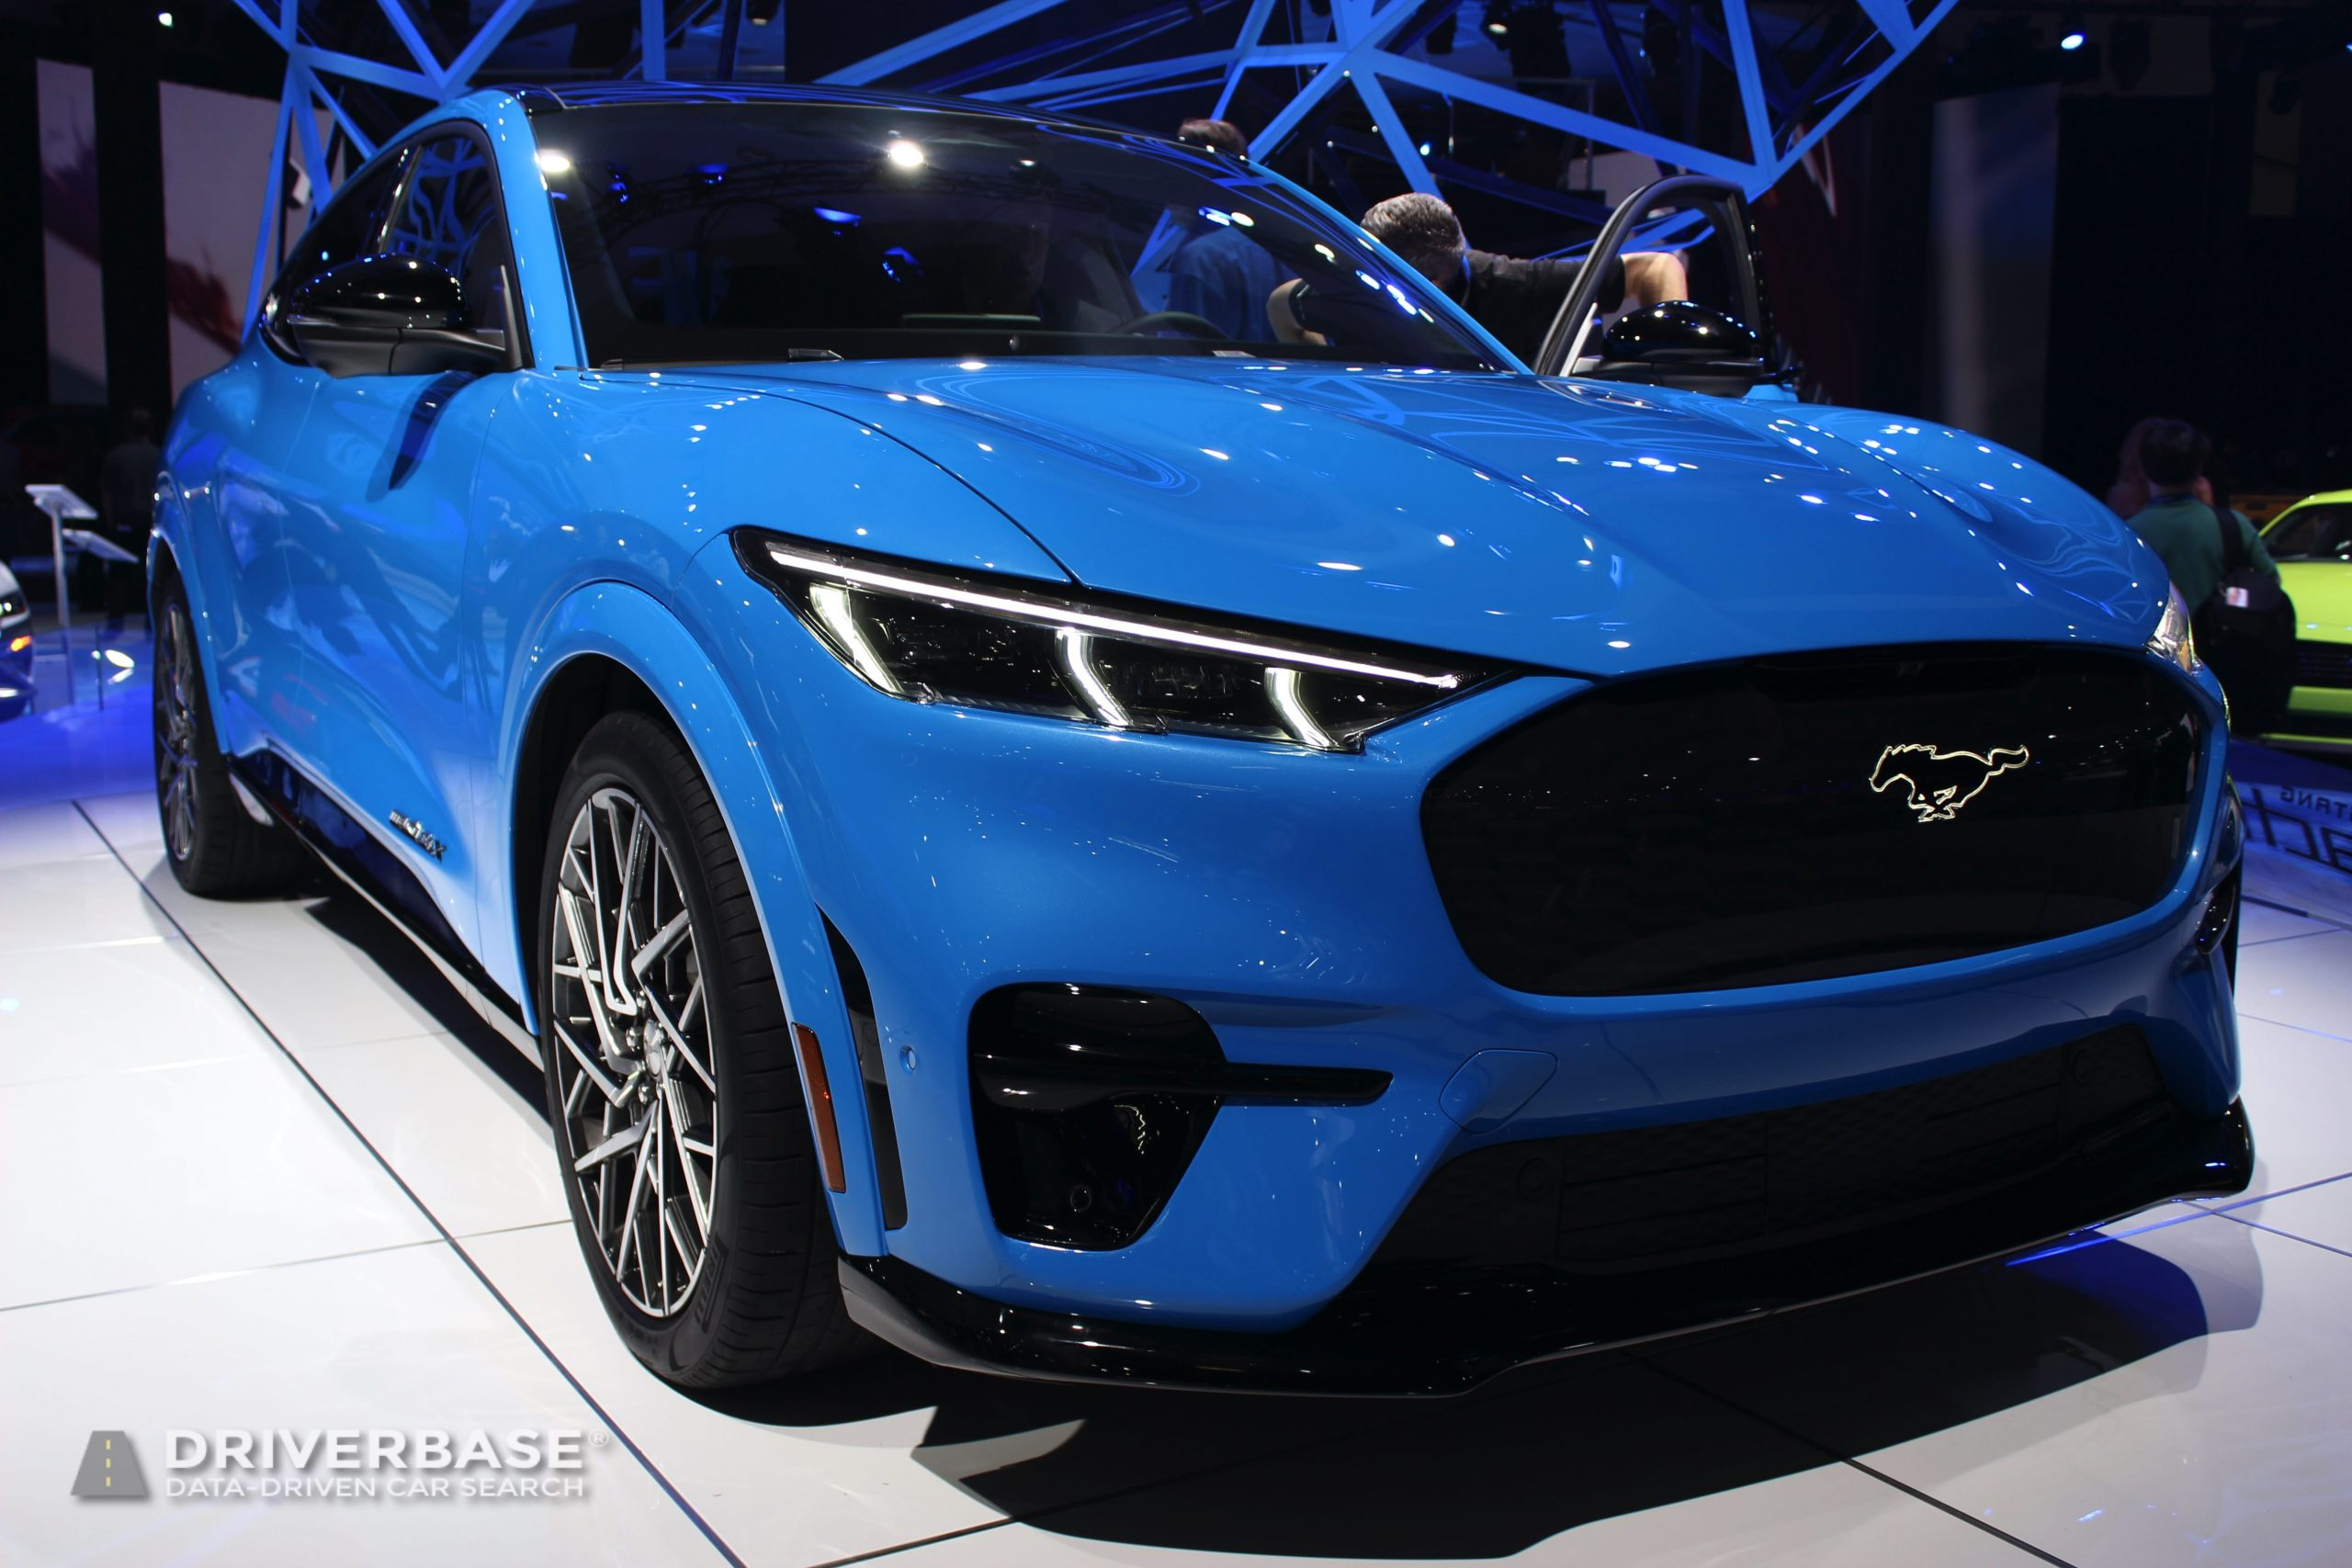 2021 Ford Mustang Mach-E GT Electric SUV at the Los Angeles Auto Show